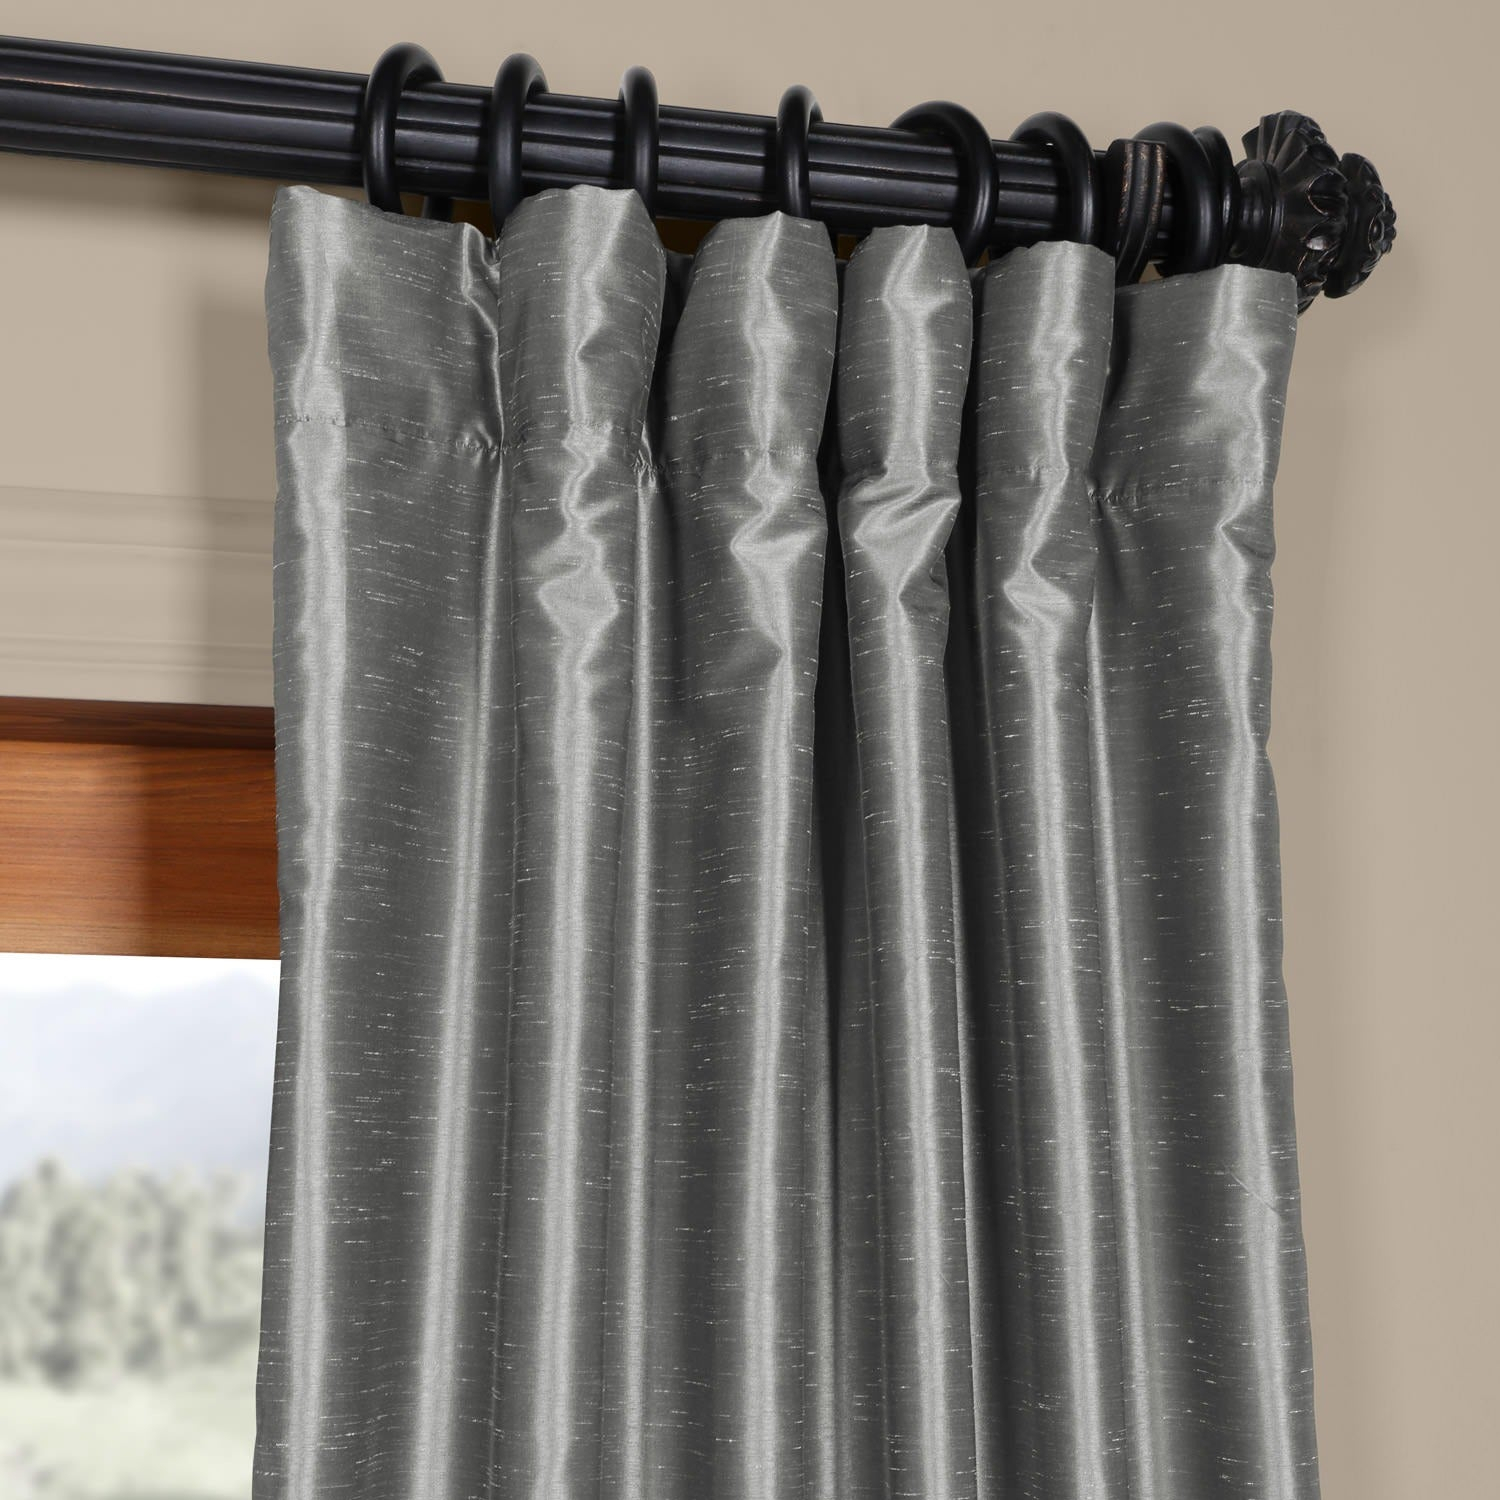 Exclusive Fabrics Storm Grey Vintage Faux Textured Dupioni Single Silk Curtain Panel Within Storm Grey Vintage Faux Textured Dupioni Single Silk Curtain Panels (View 17 of 30)